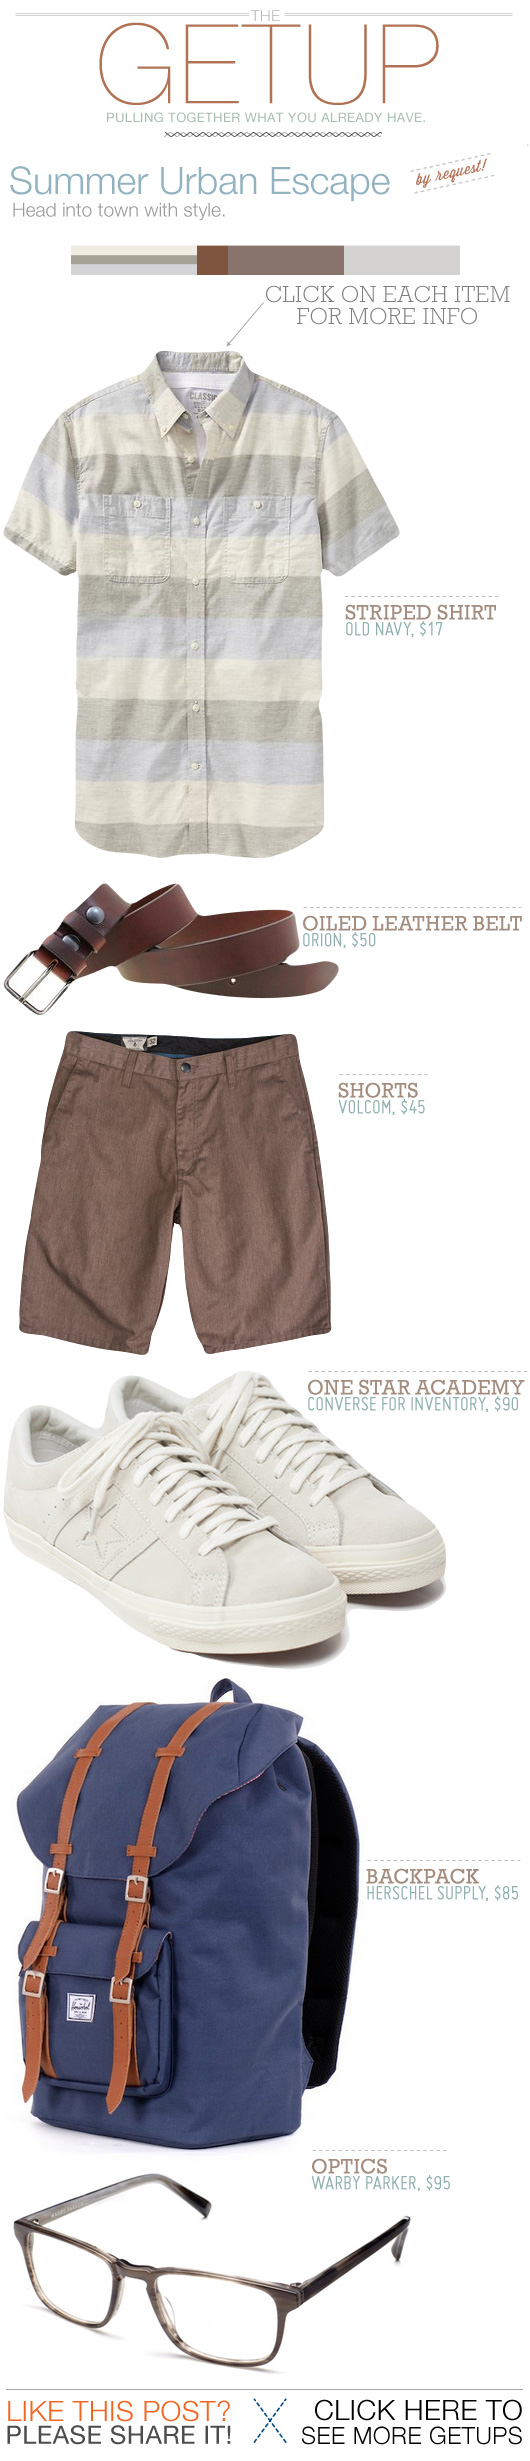 Getup Summer Urban Escape - striped shirt, brown shorts, white sneakers